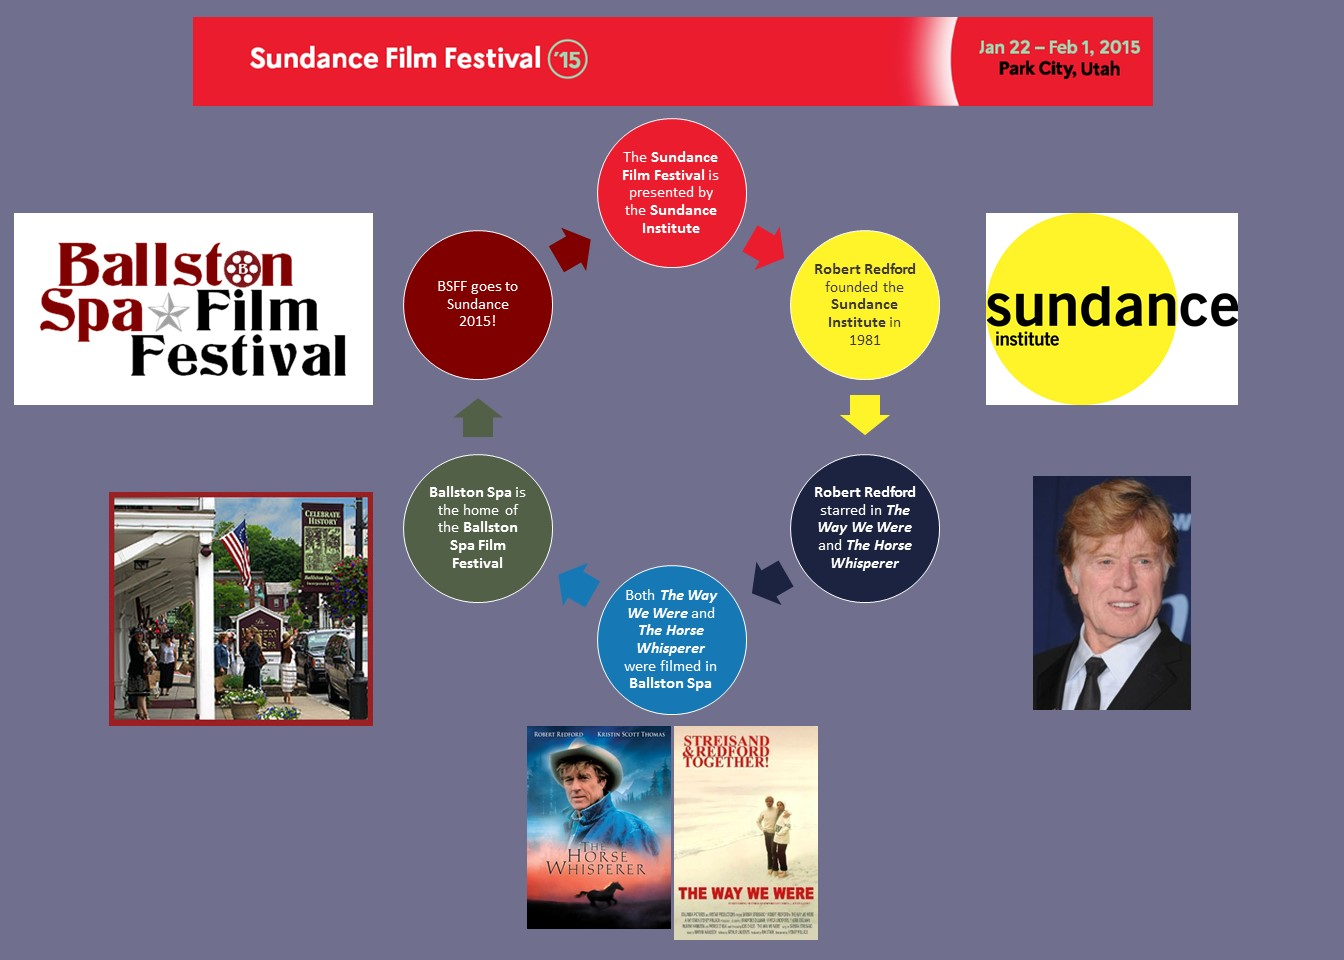 Six degrees of separation: BSFF-Redford-Sundance